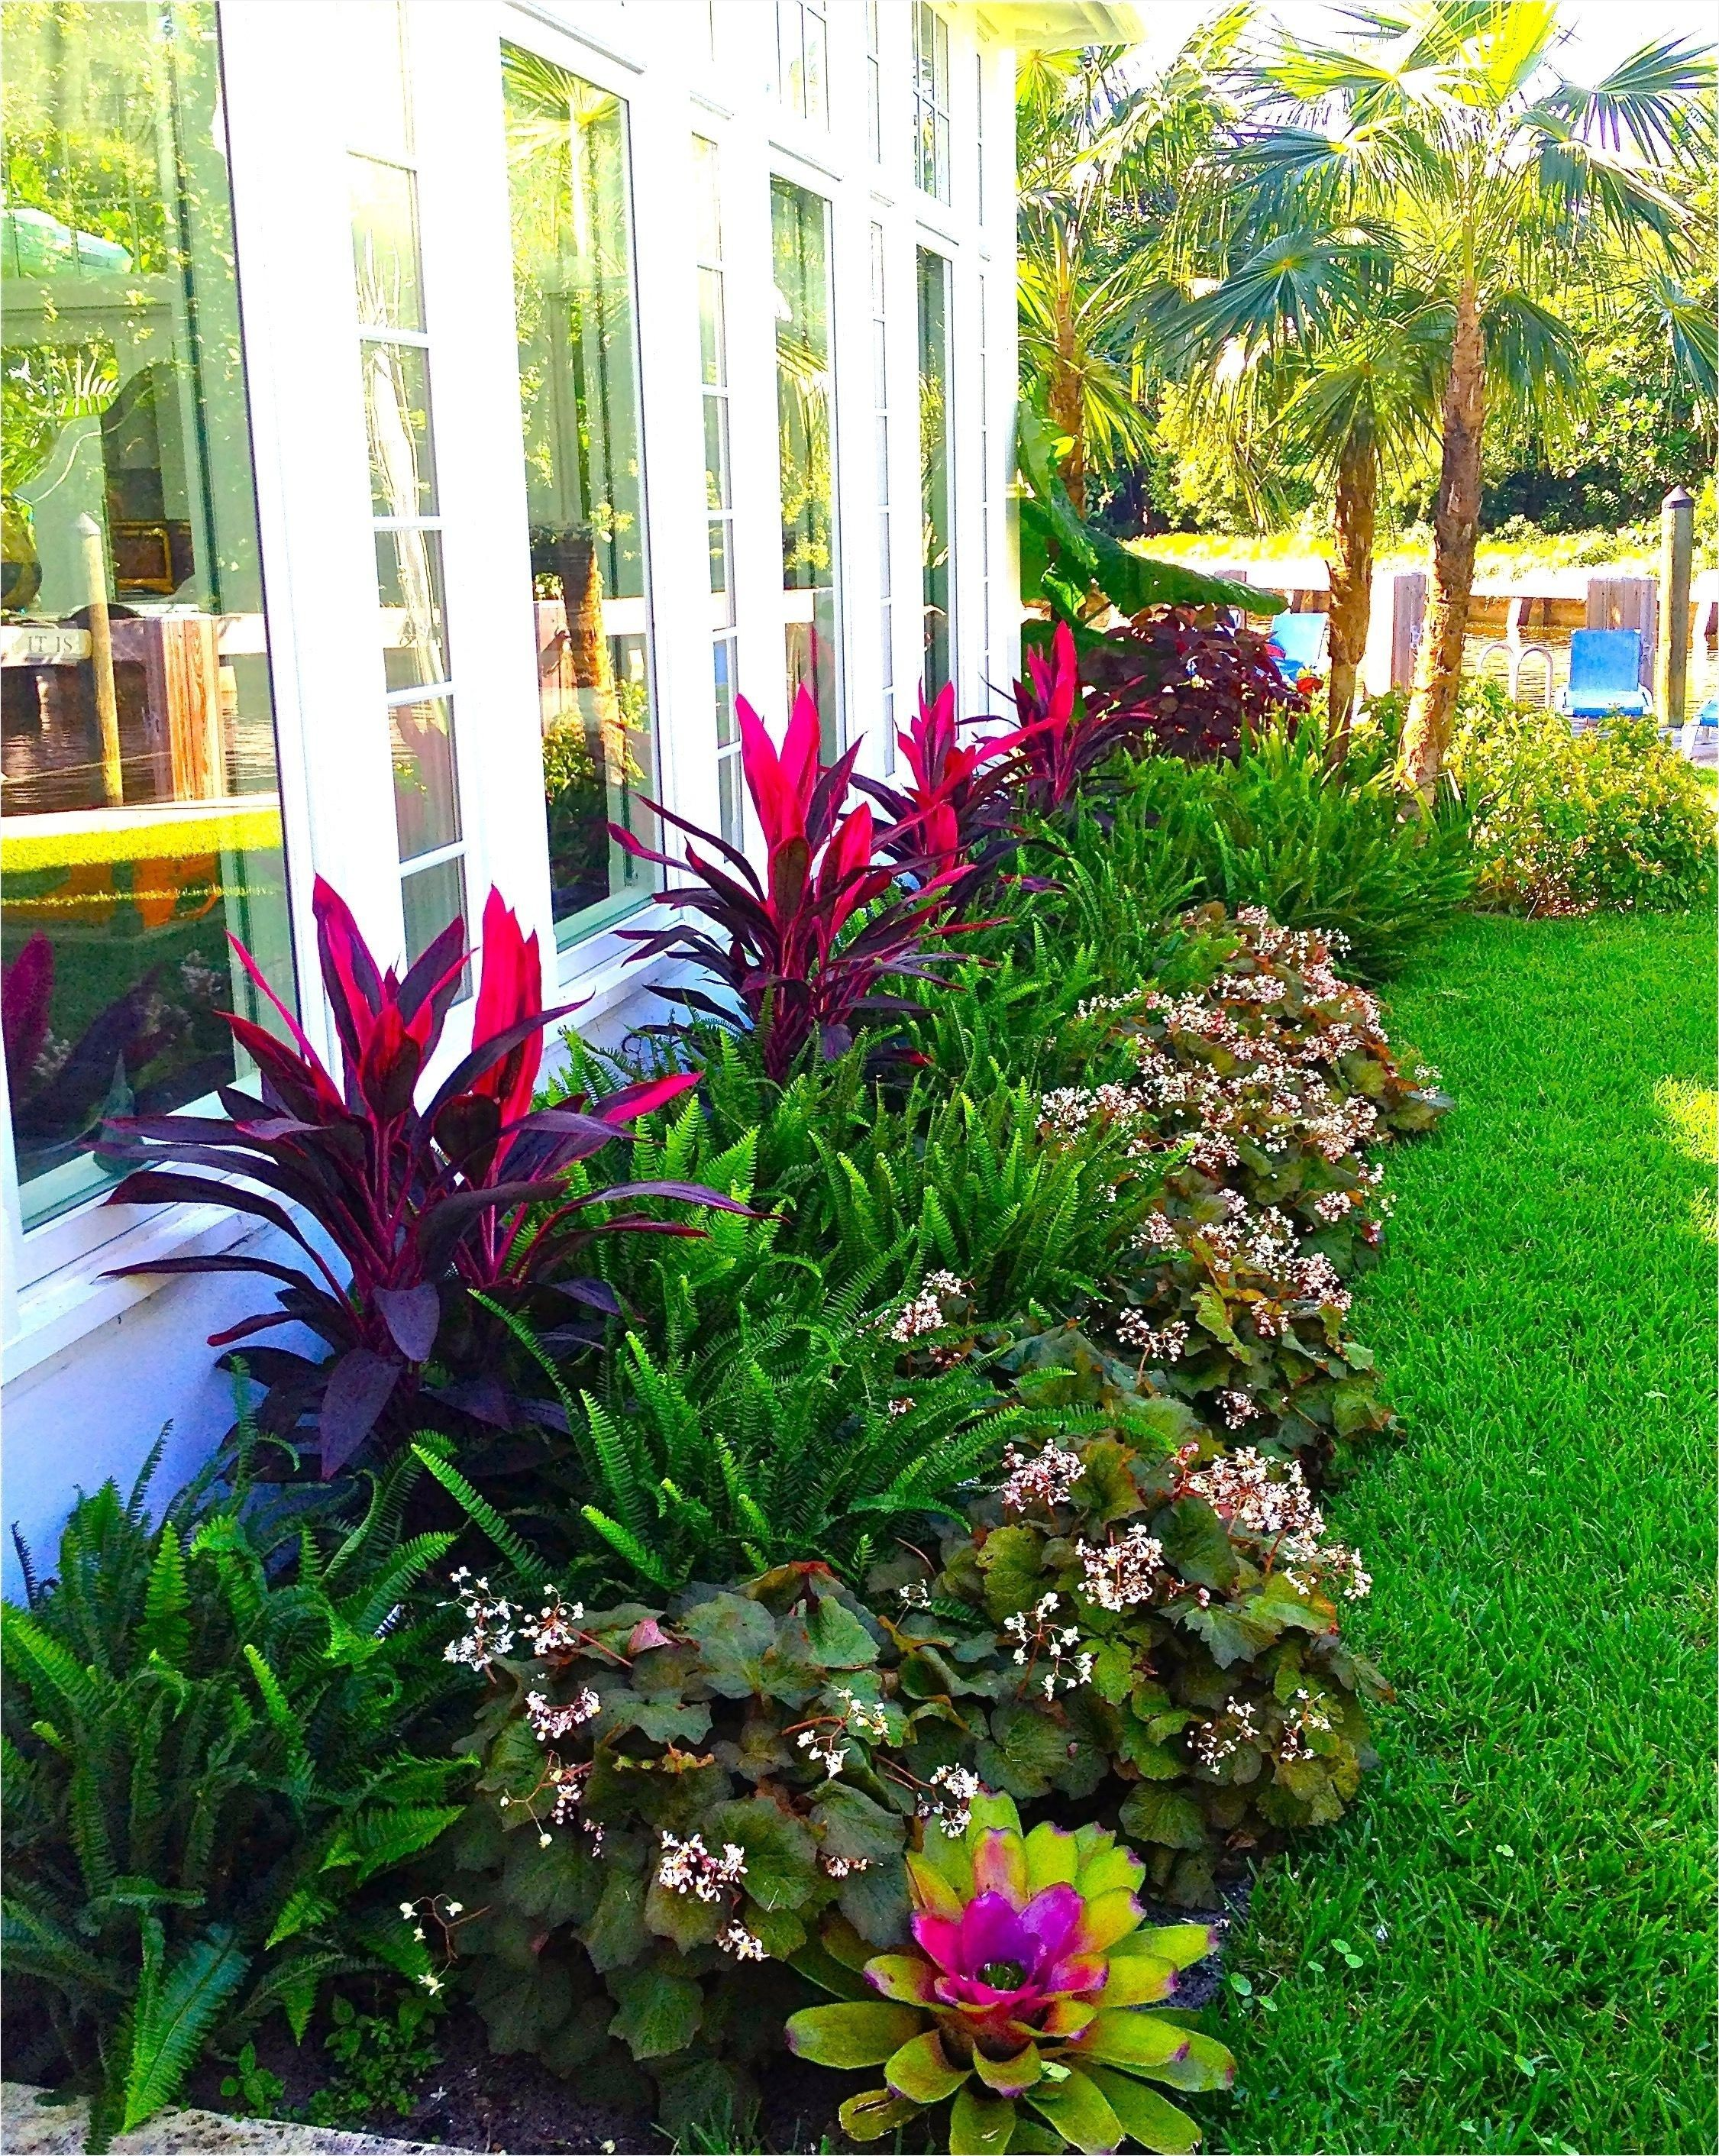 most amazing tropical garden landscaping ideas with on awesome backyard garden landscaping ideas that looks amazing id=38272